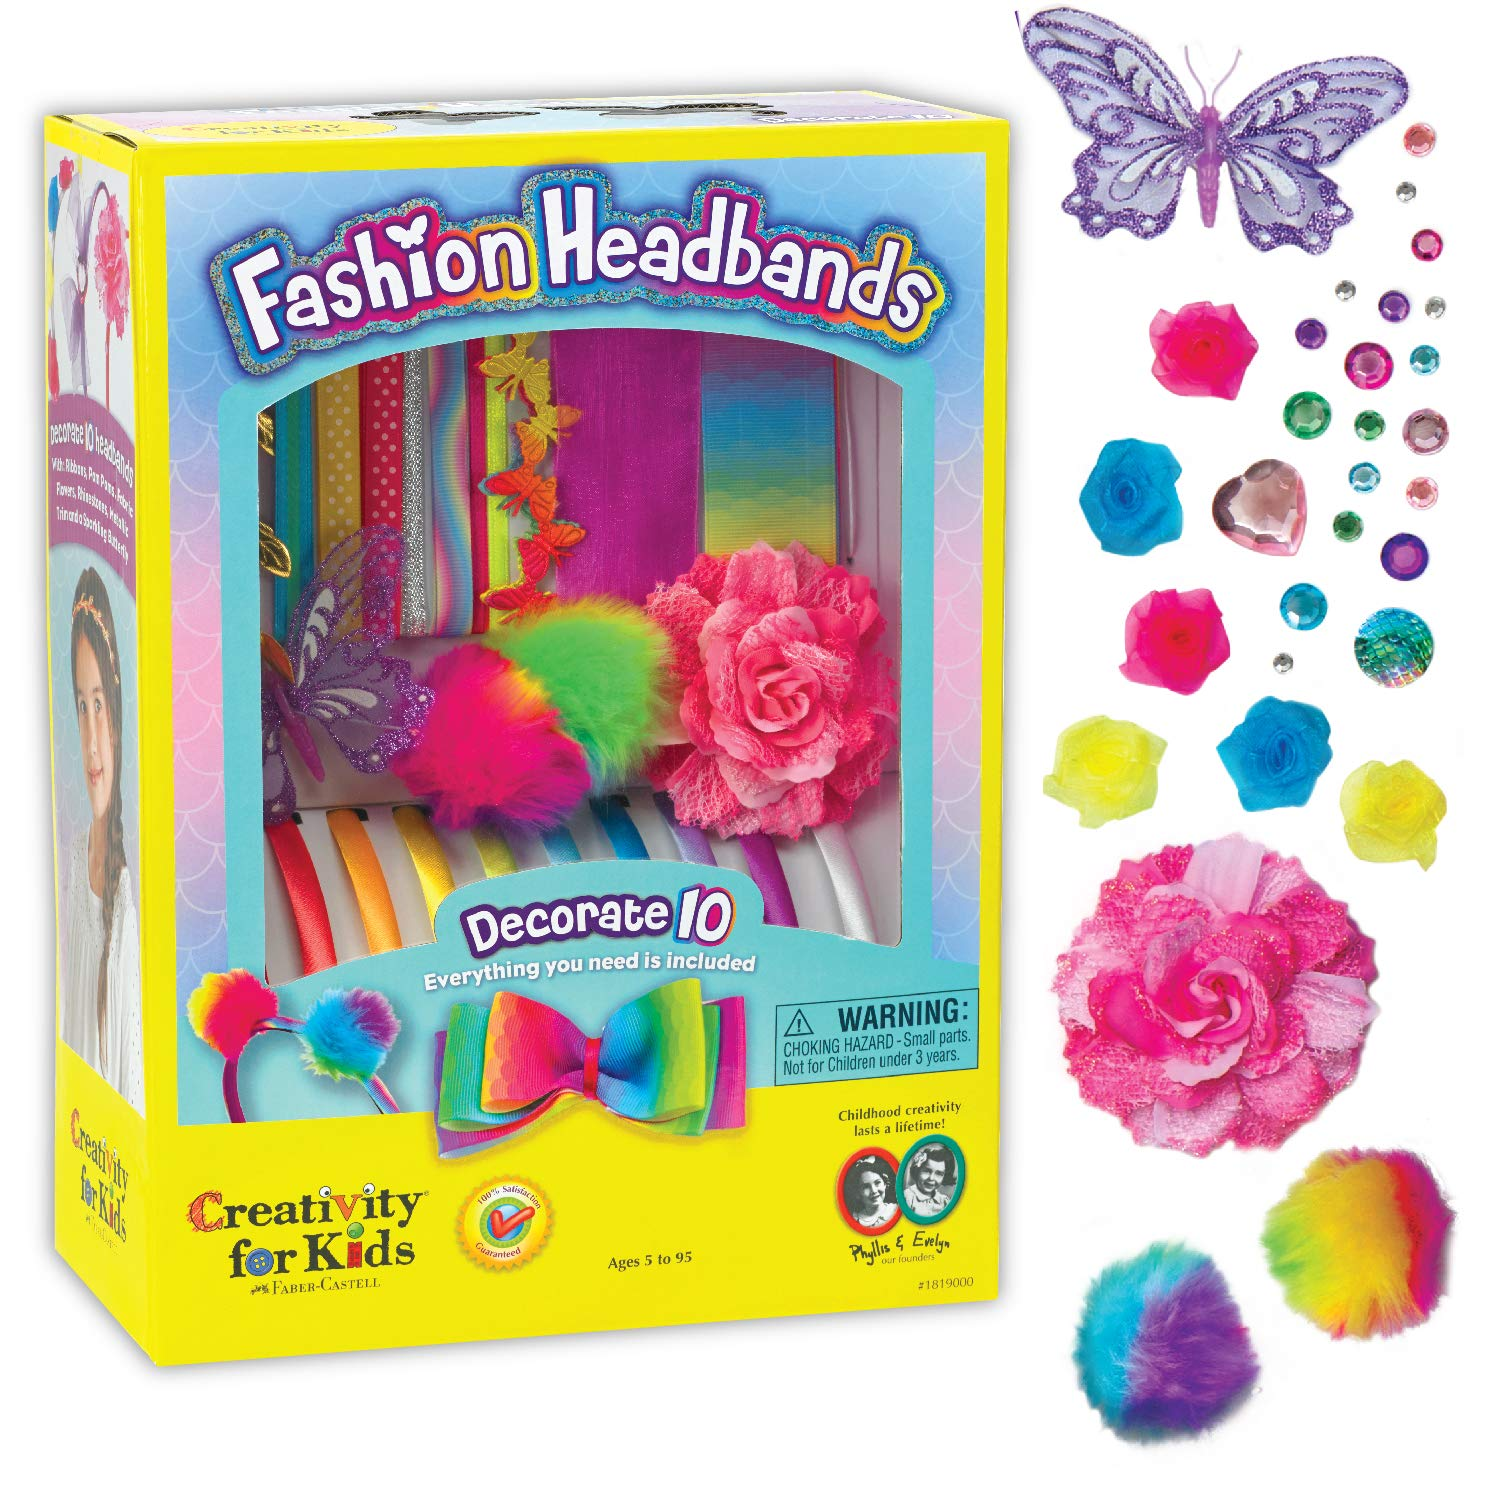 Creativity for Kids Fashion Headbands Craft Kit, Makes 10 Unique Hair Accessories by Creativity for Kids